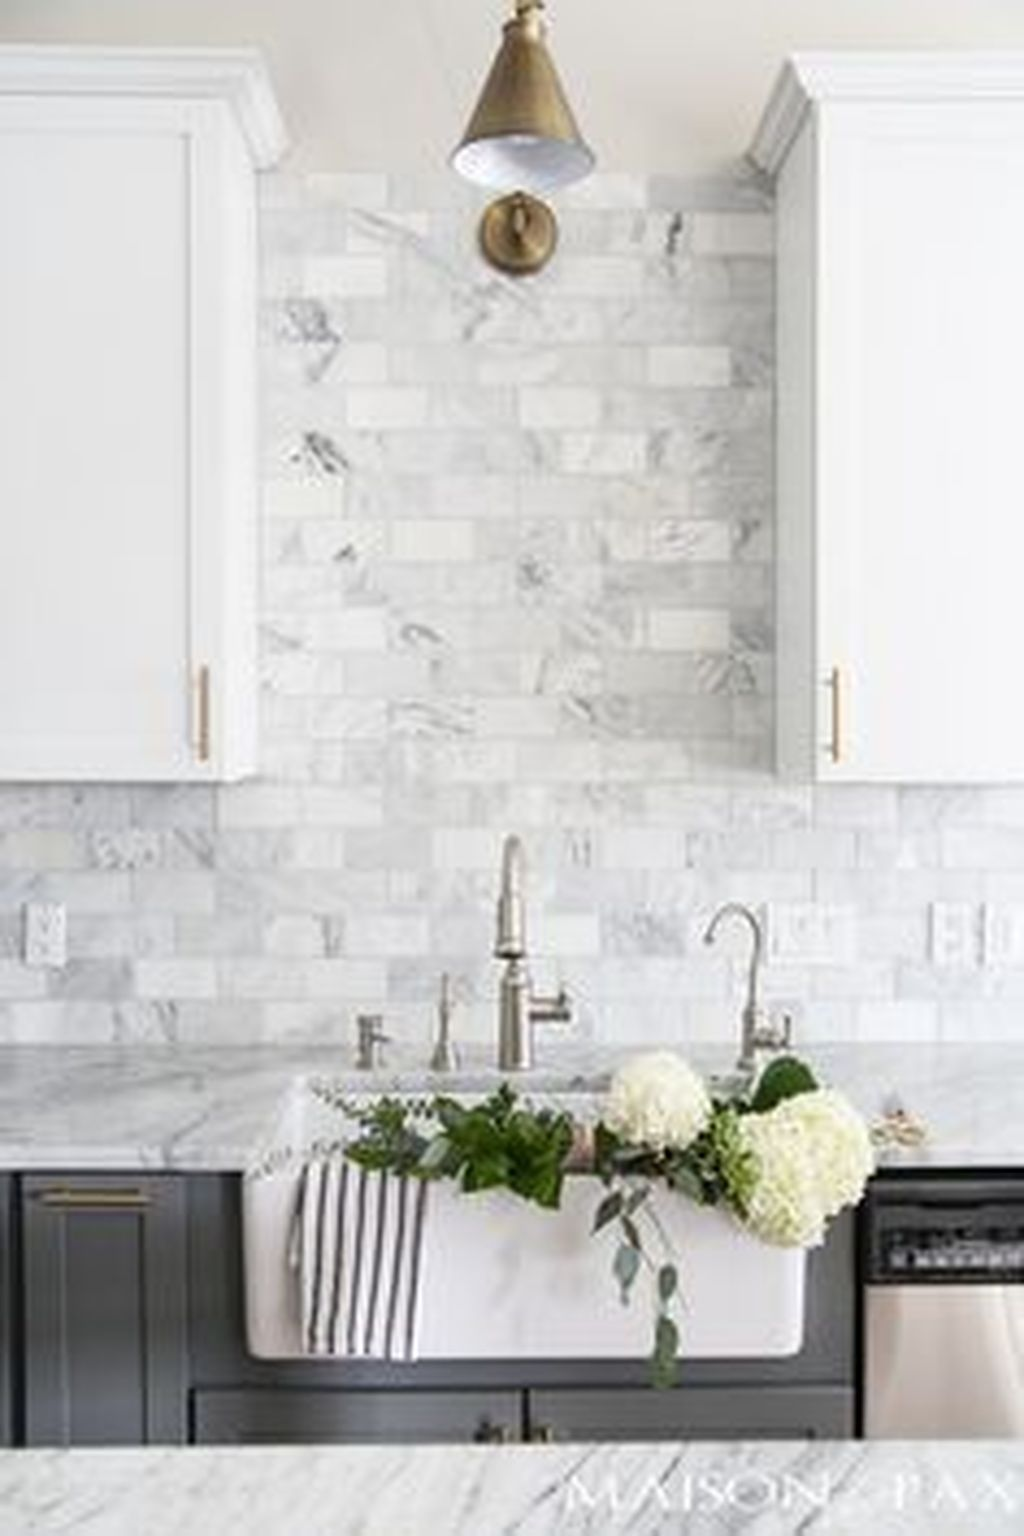 elegant kitchen sink design ideas that you will fall in love with rh pinterest com